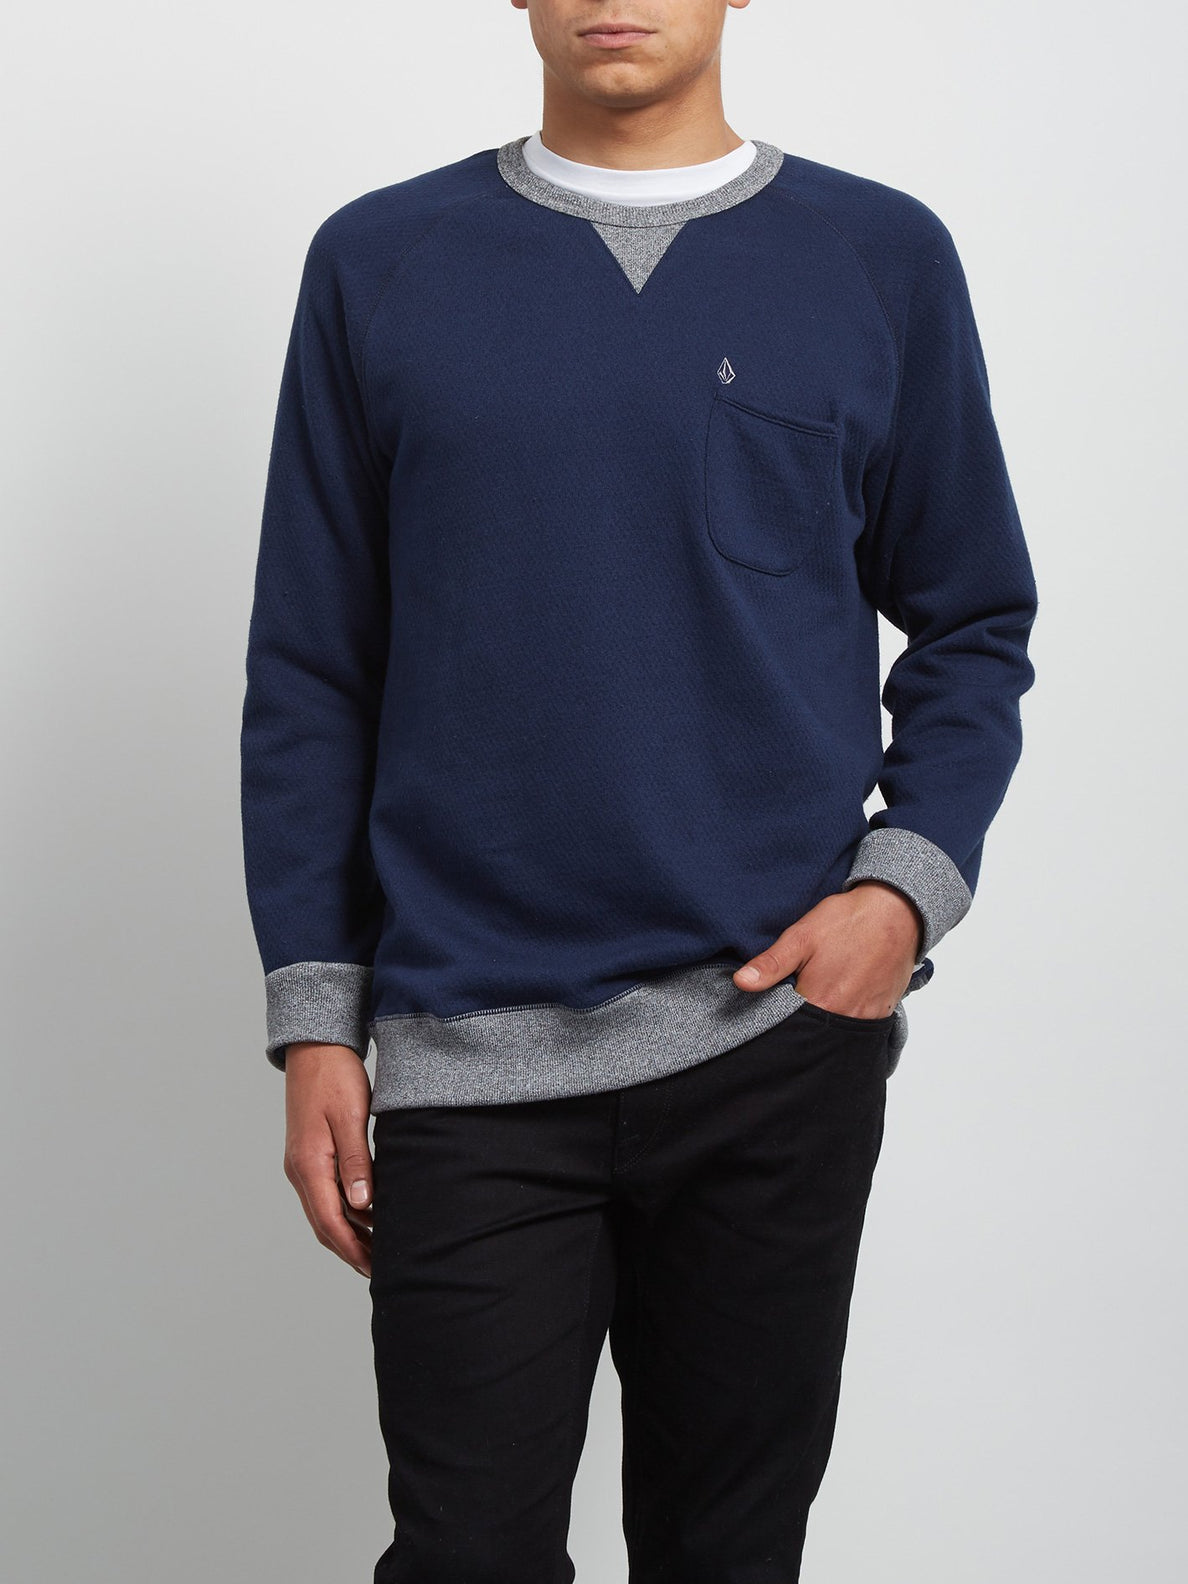 Sweatshirt Shelden - Indigo